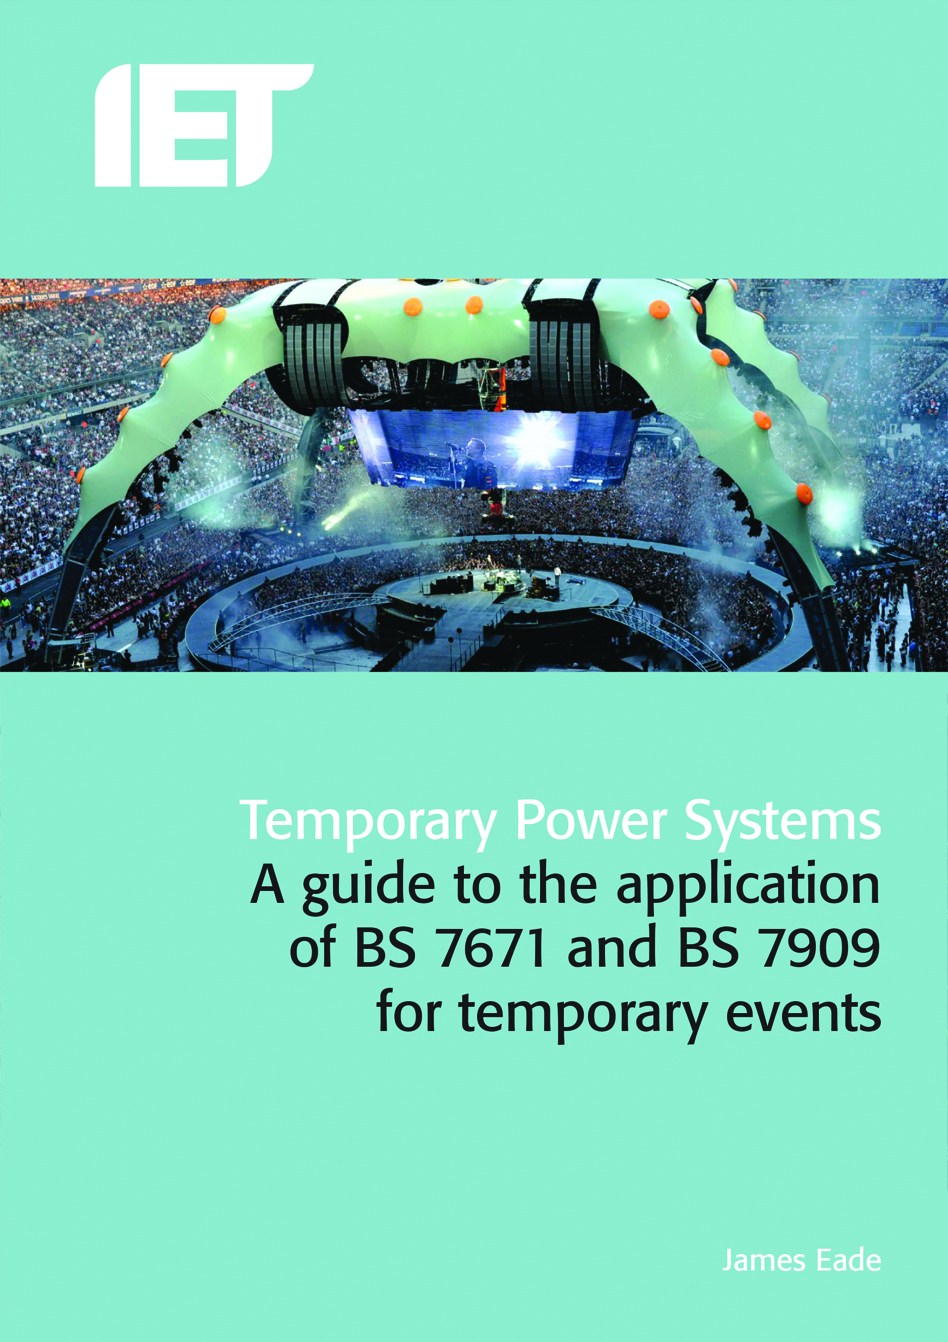 Temporary Power Systems, A guide to the application of BS 7671 and BS 7909 for temporary events